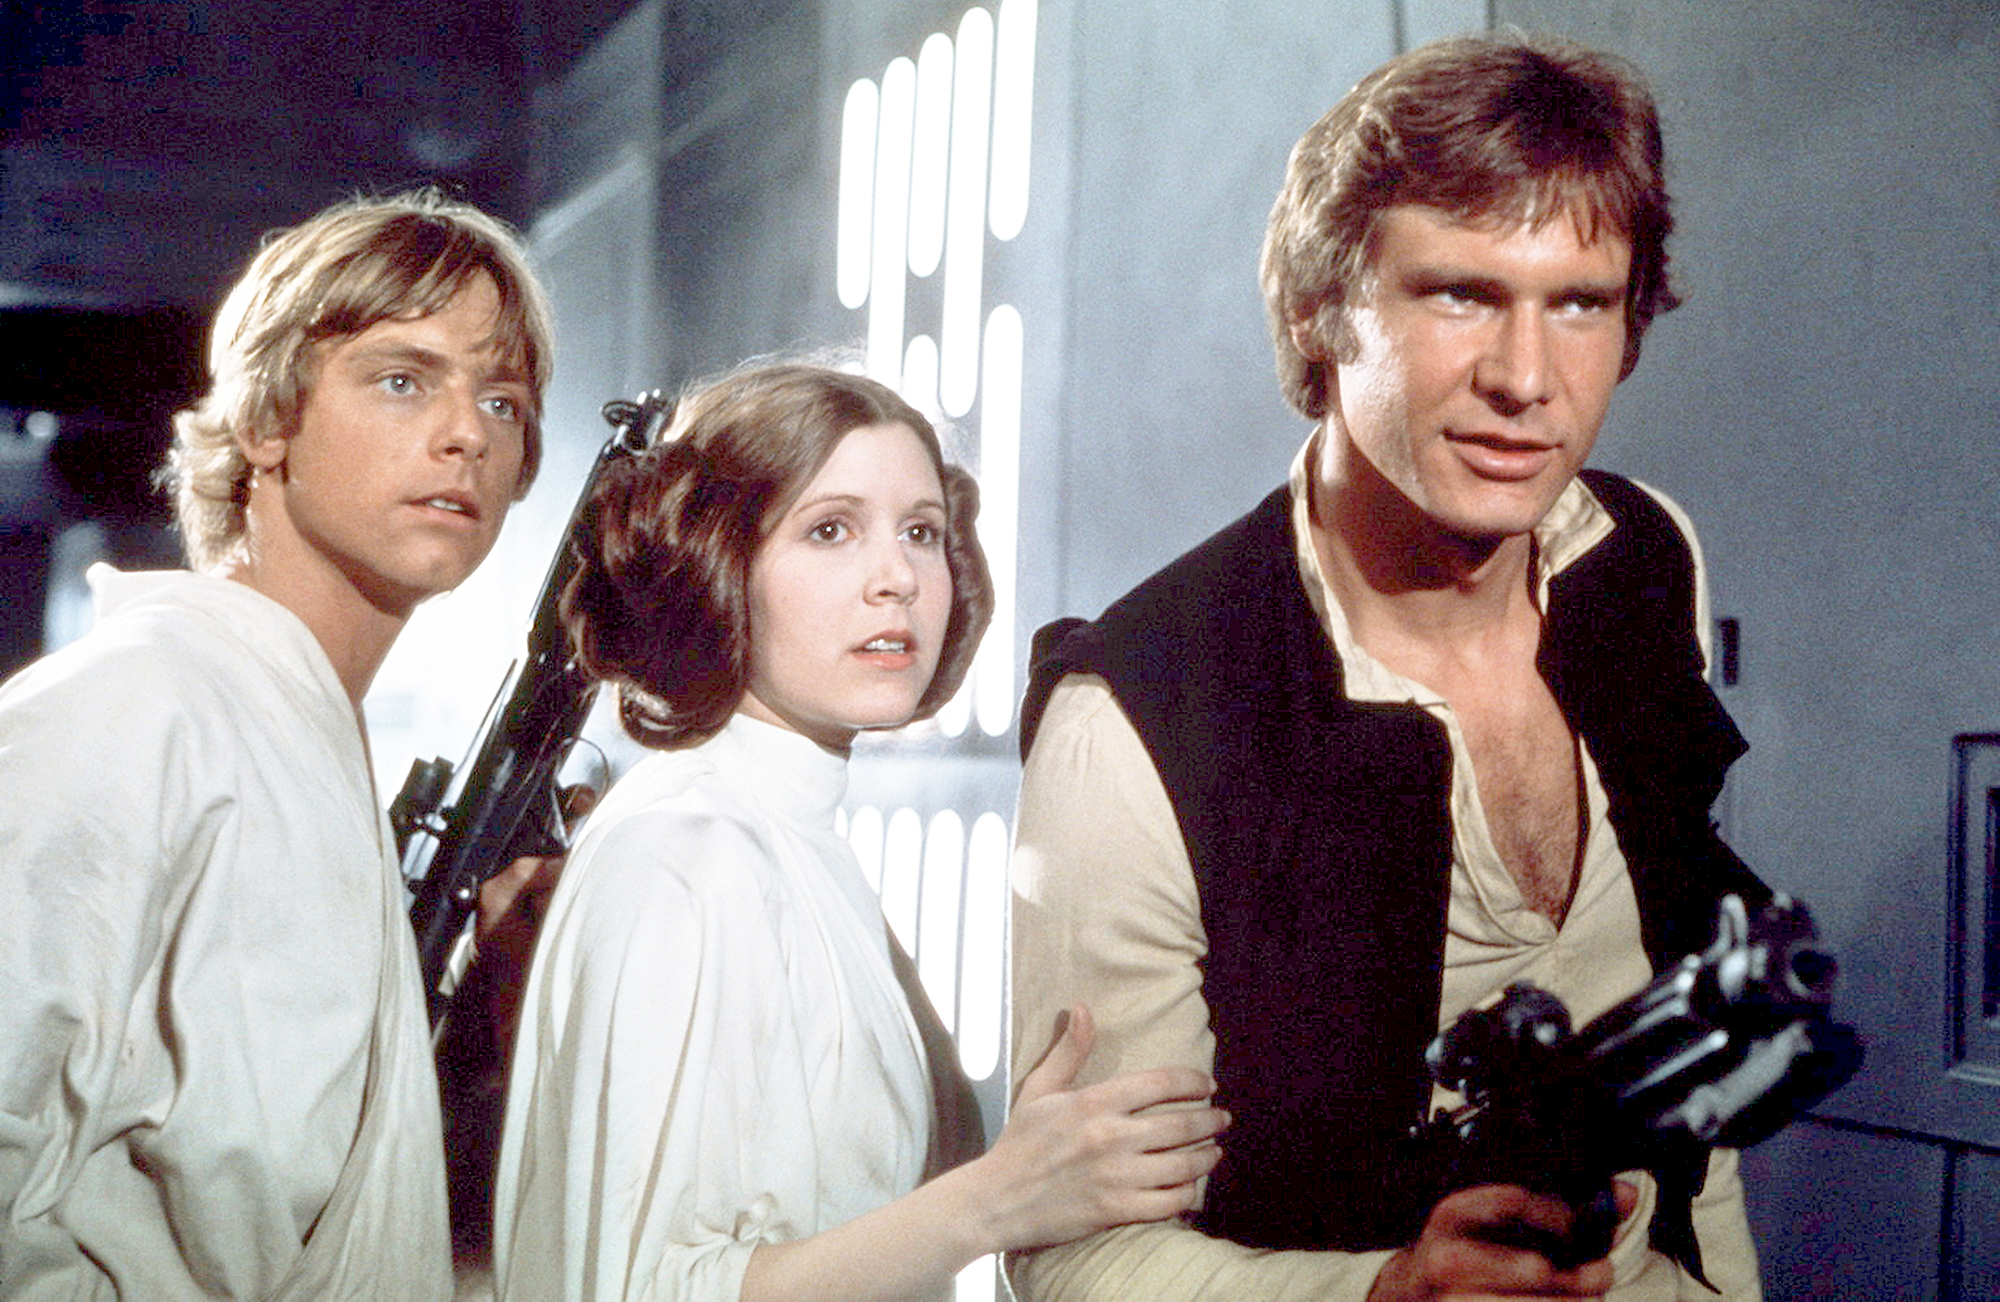 Mark Hamill, Carrie Fisher and Harrison Ford Star Wars